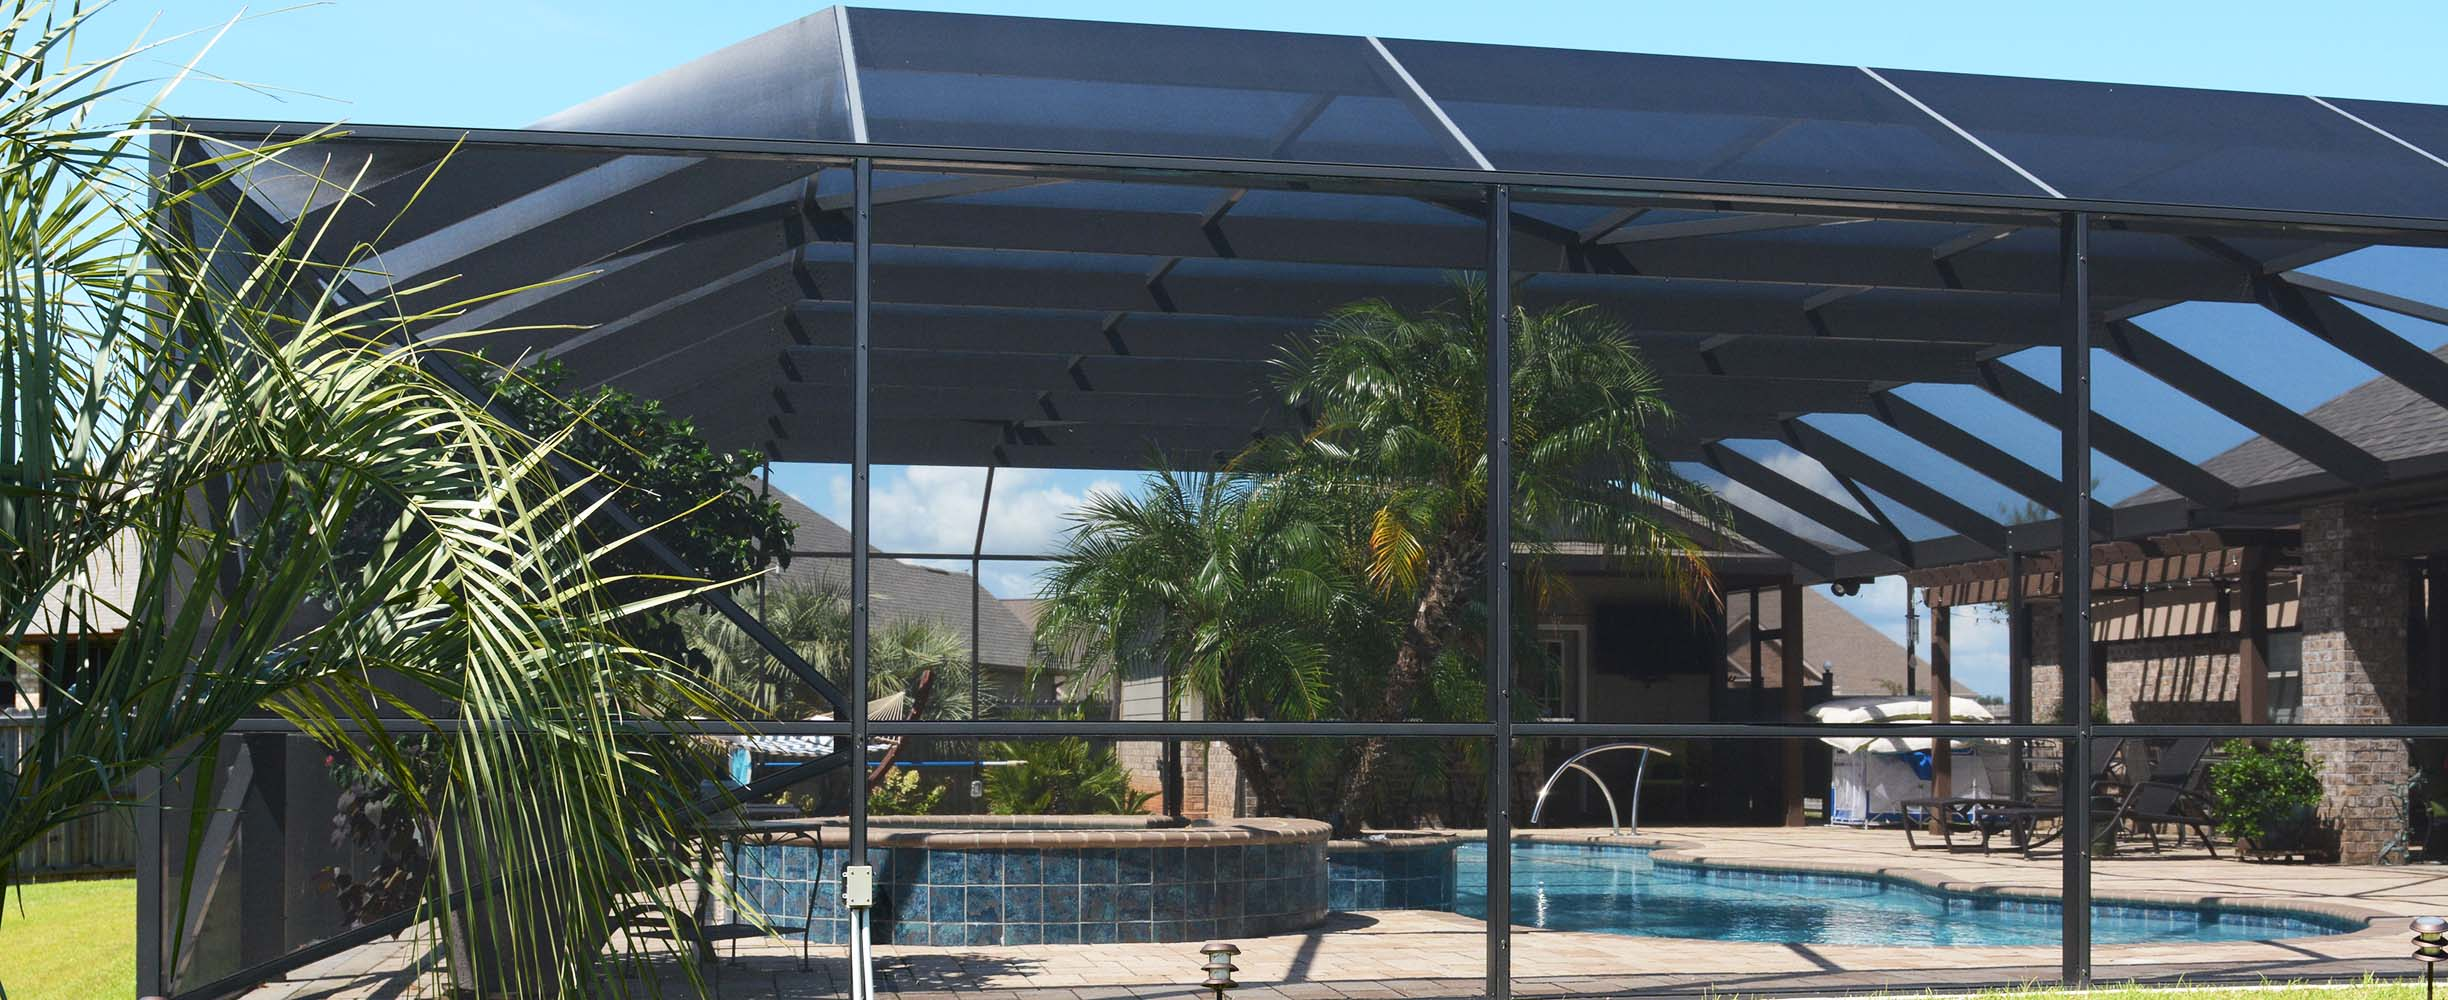 Aluminum swimming pool enclosure in Foley, Alabama